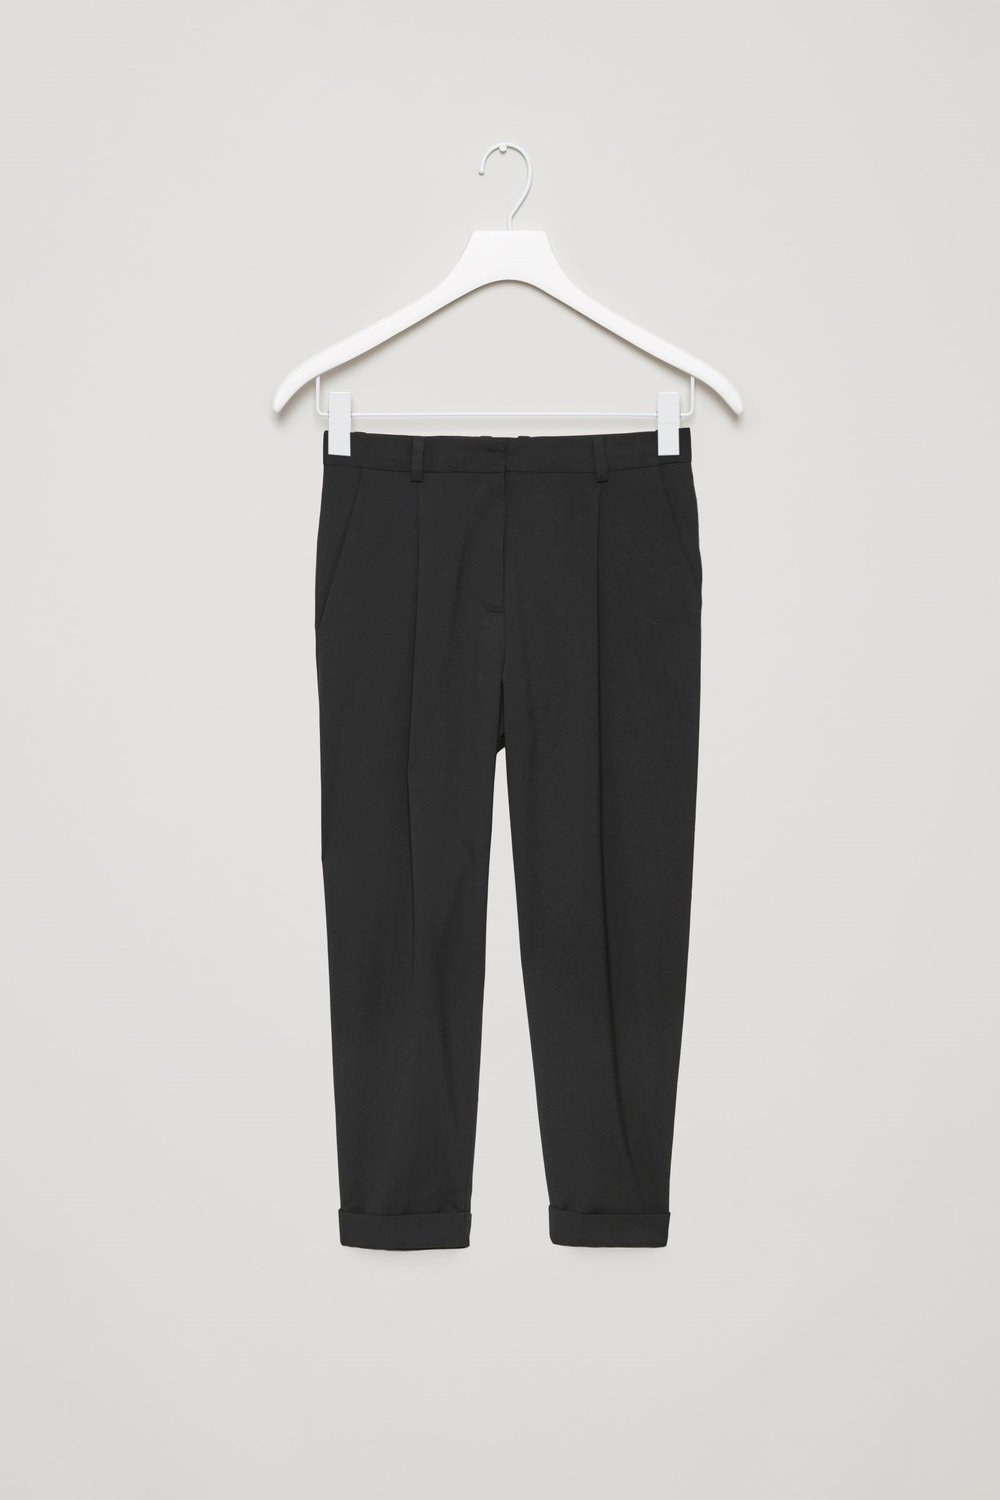 - WOOL TROUSERS WITH TURN-UPS / Cos